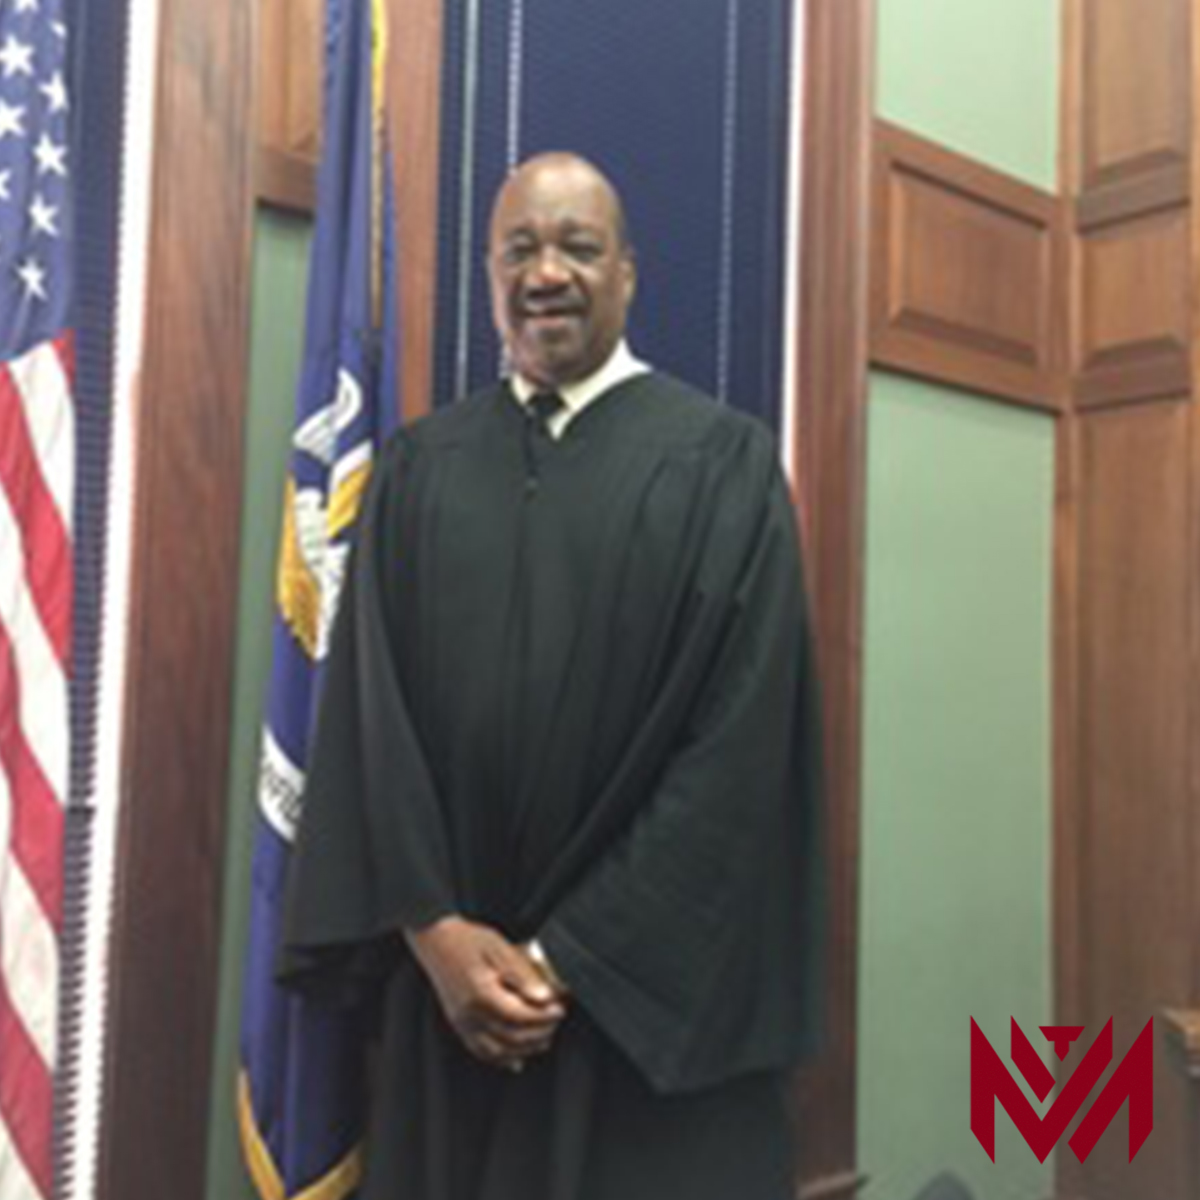 Judge Harry Cantrell